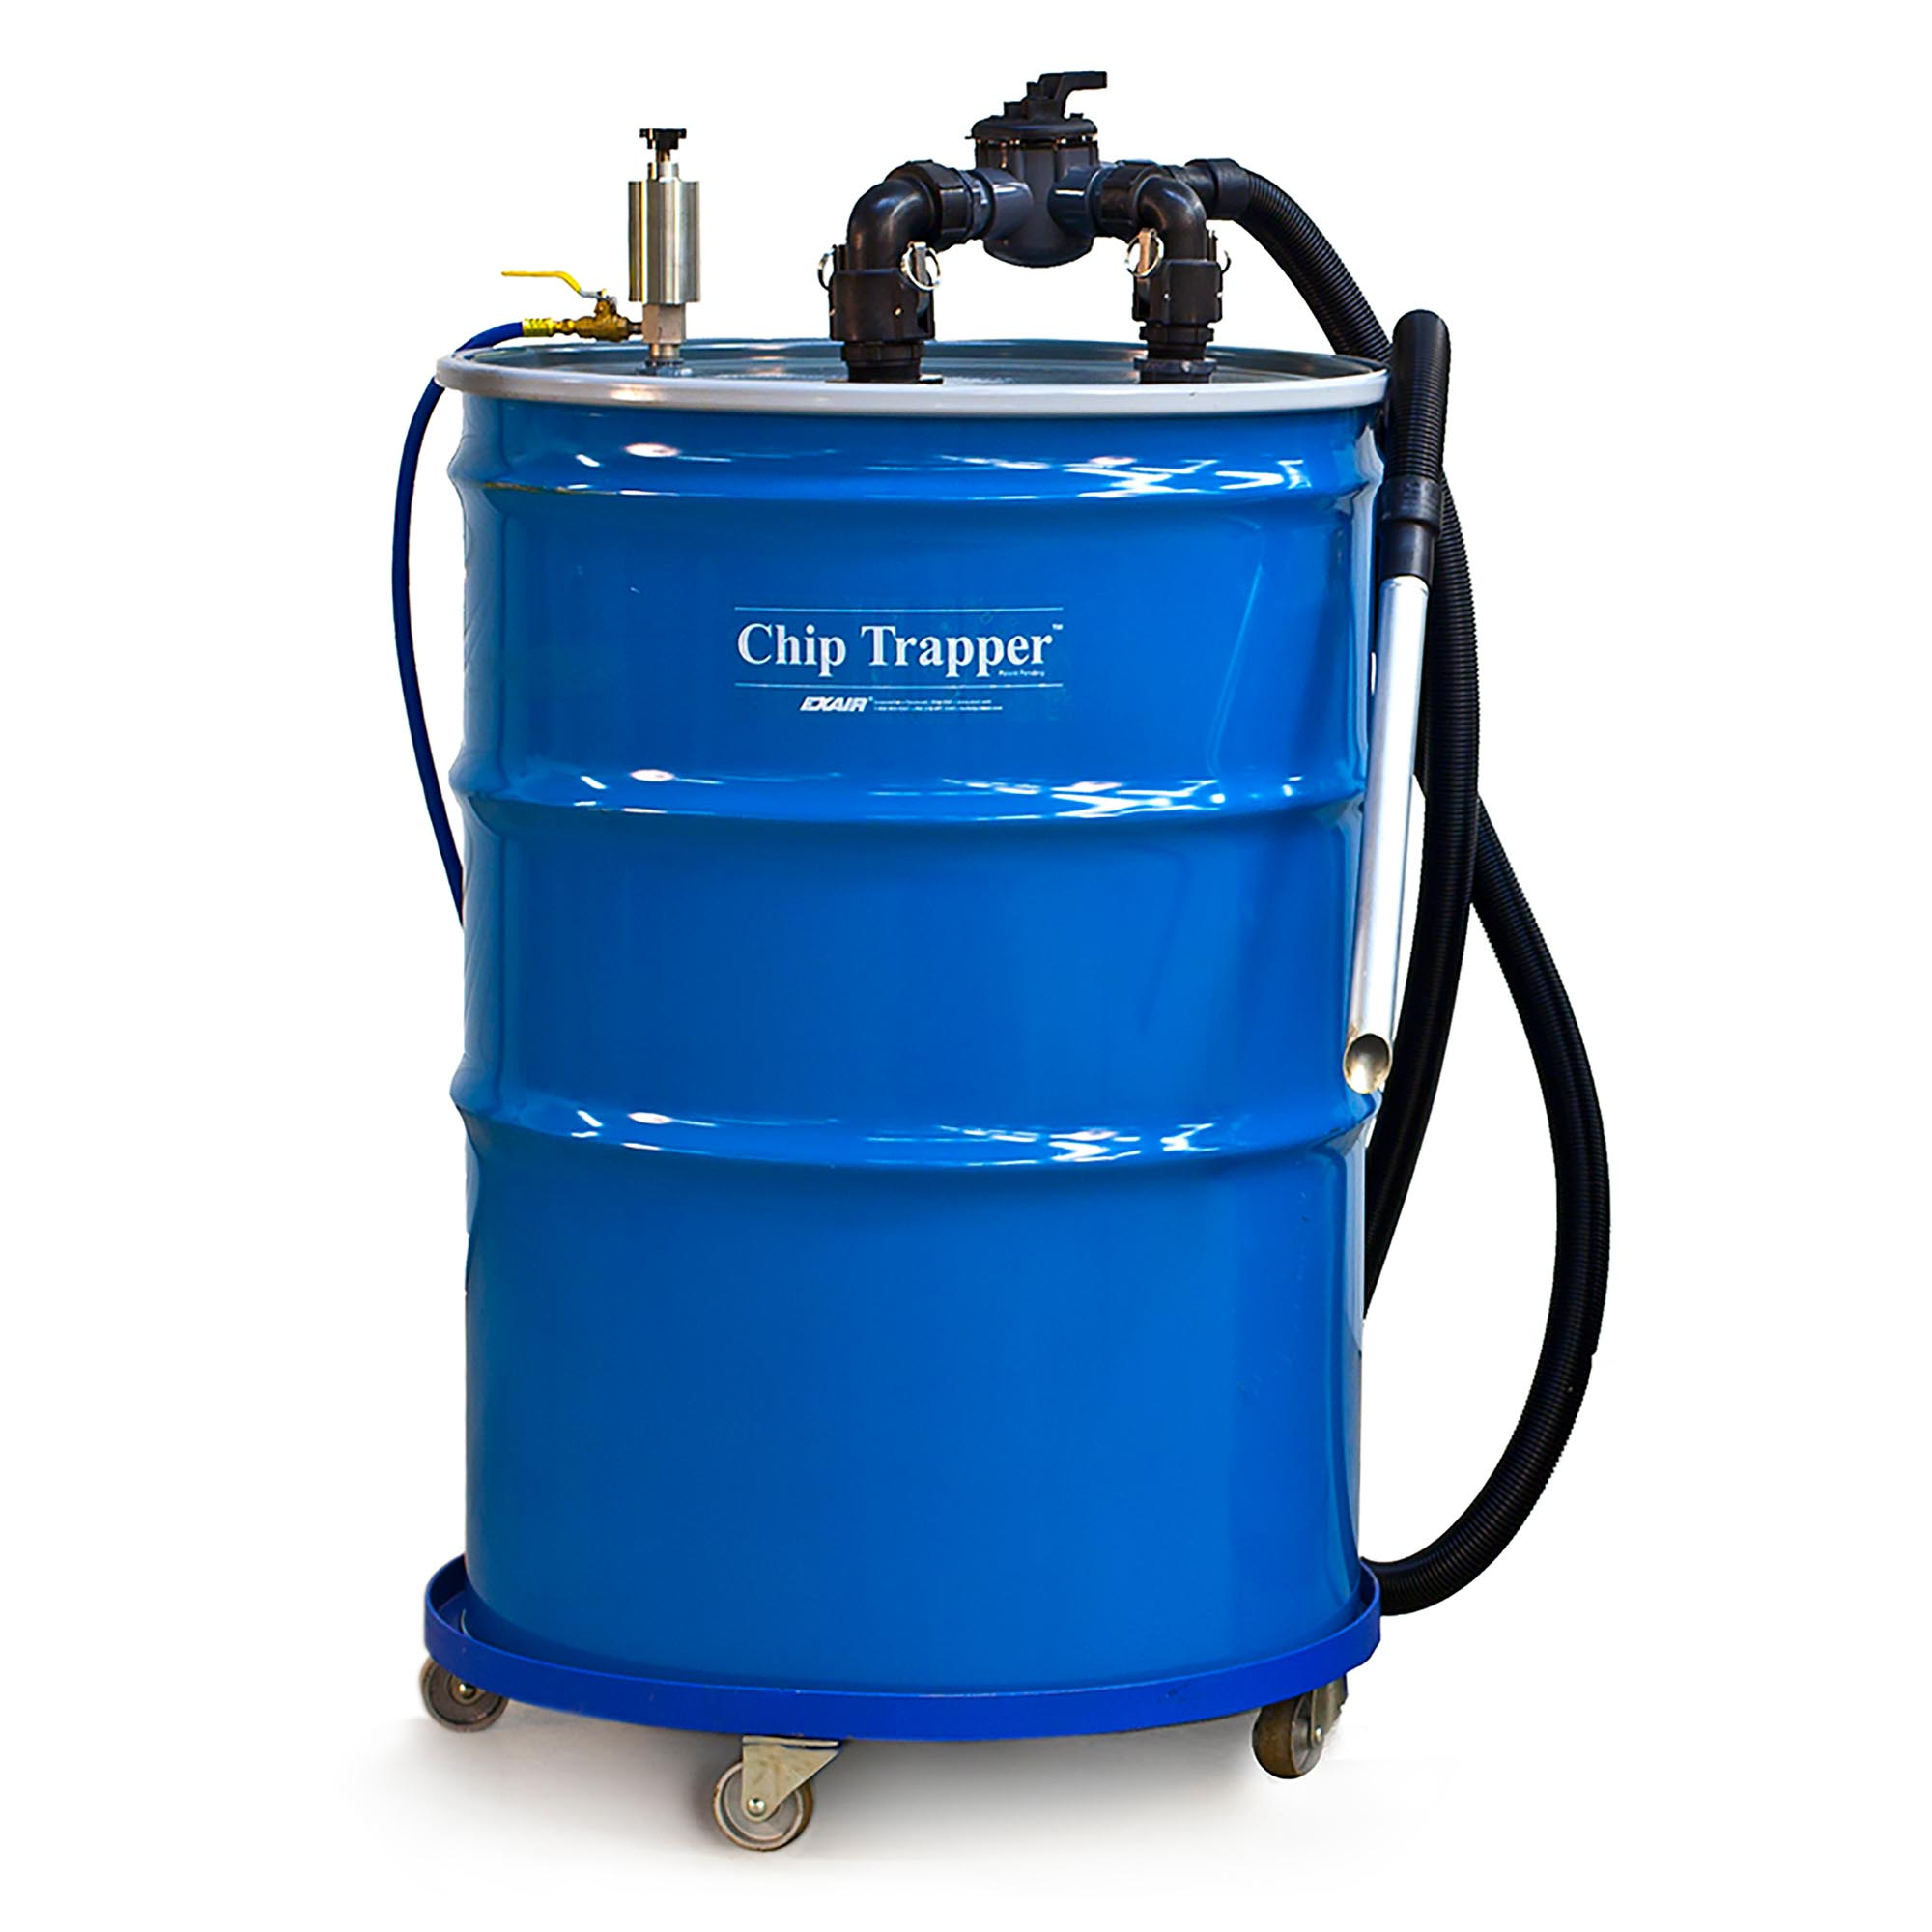 Model 6198-110 110 Gallon Chip Trapper System